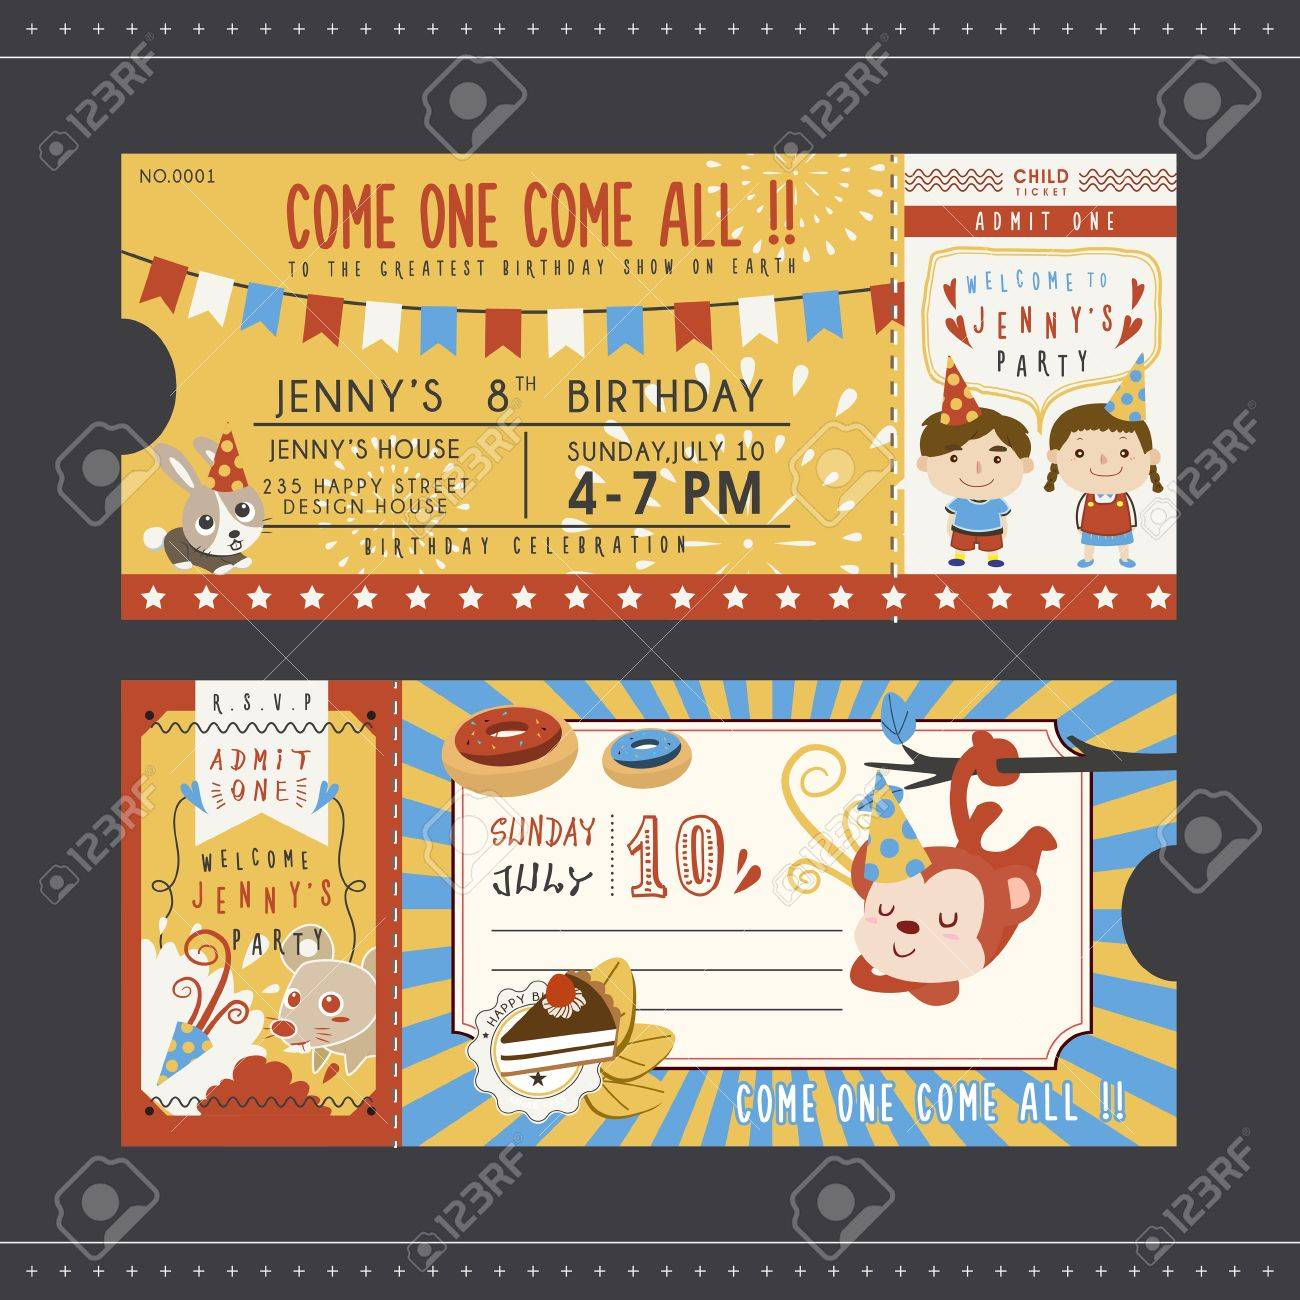 Adorable Cartoon Birthday Party Invitation Template Collection ...